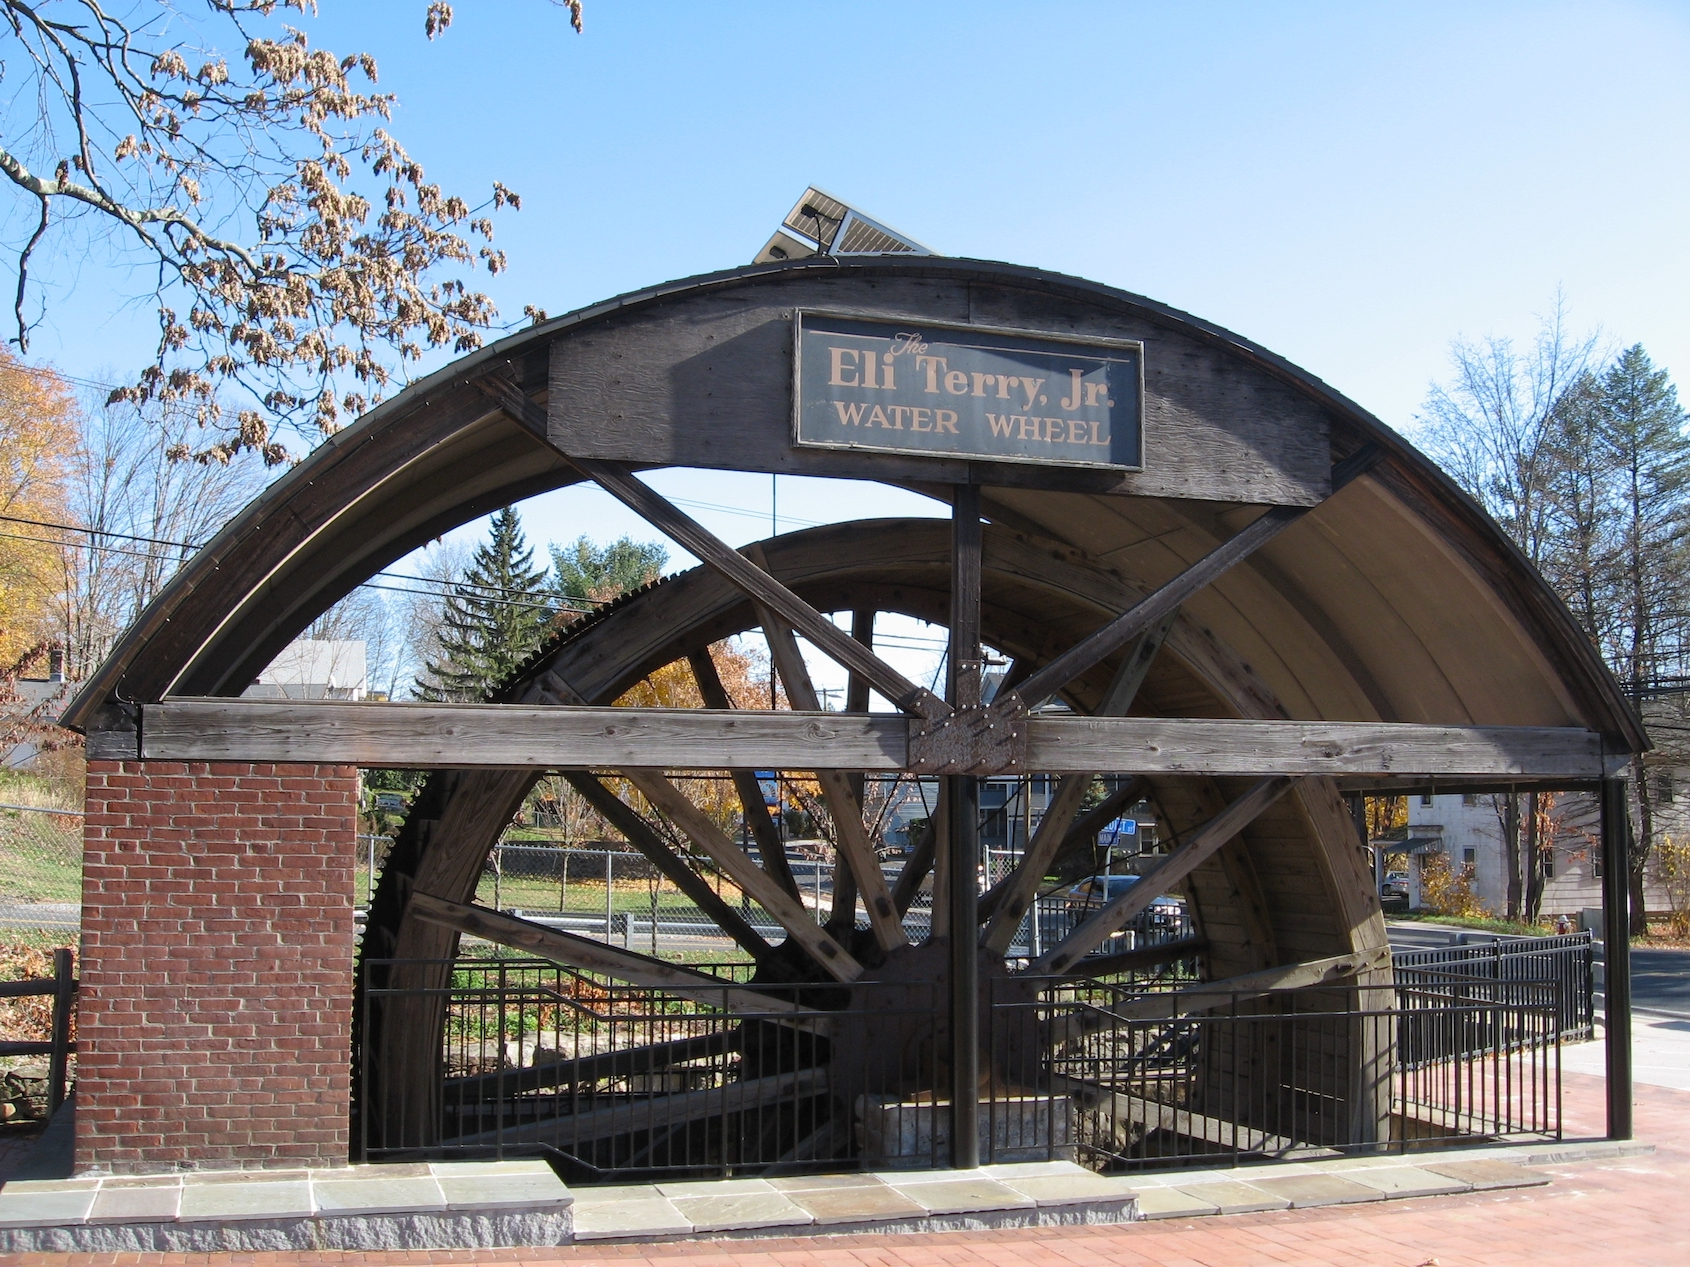 The Terryville Waterwheel is a rare intact example of a 19th century waterwheel.